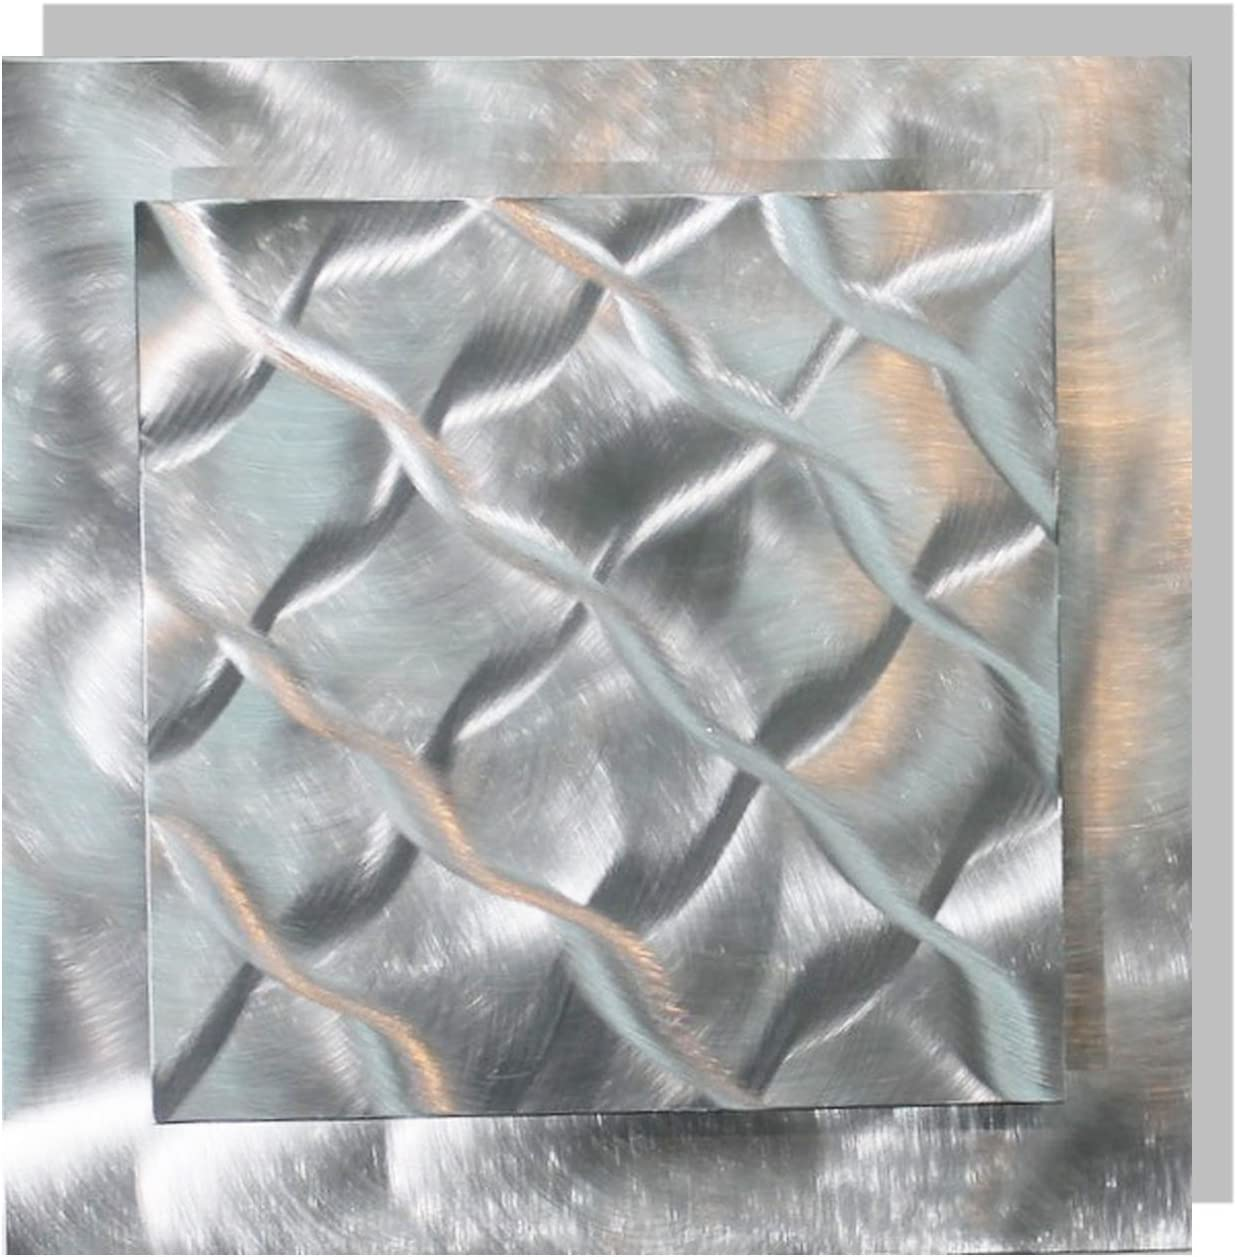 Statements2000 Eye-Catching Natural Silver with Woven Wave-Like Abstract Etchings - Modern Hand-Made Metal Wall Accent - Home Decor, Contemporary Metallic Wall Art - Prizm 1 by Jon Allen